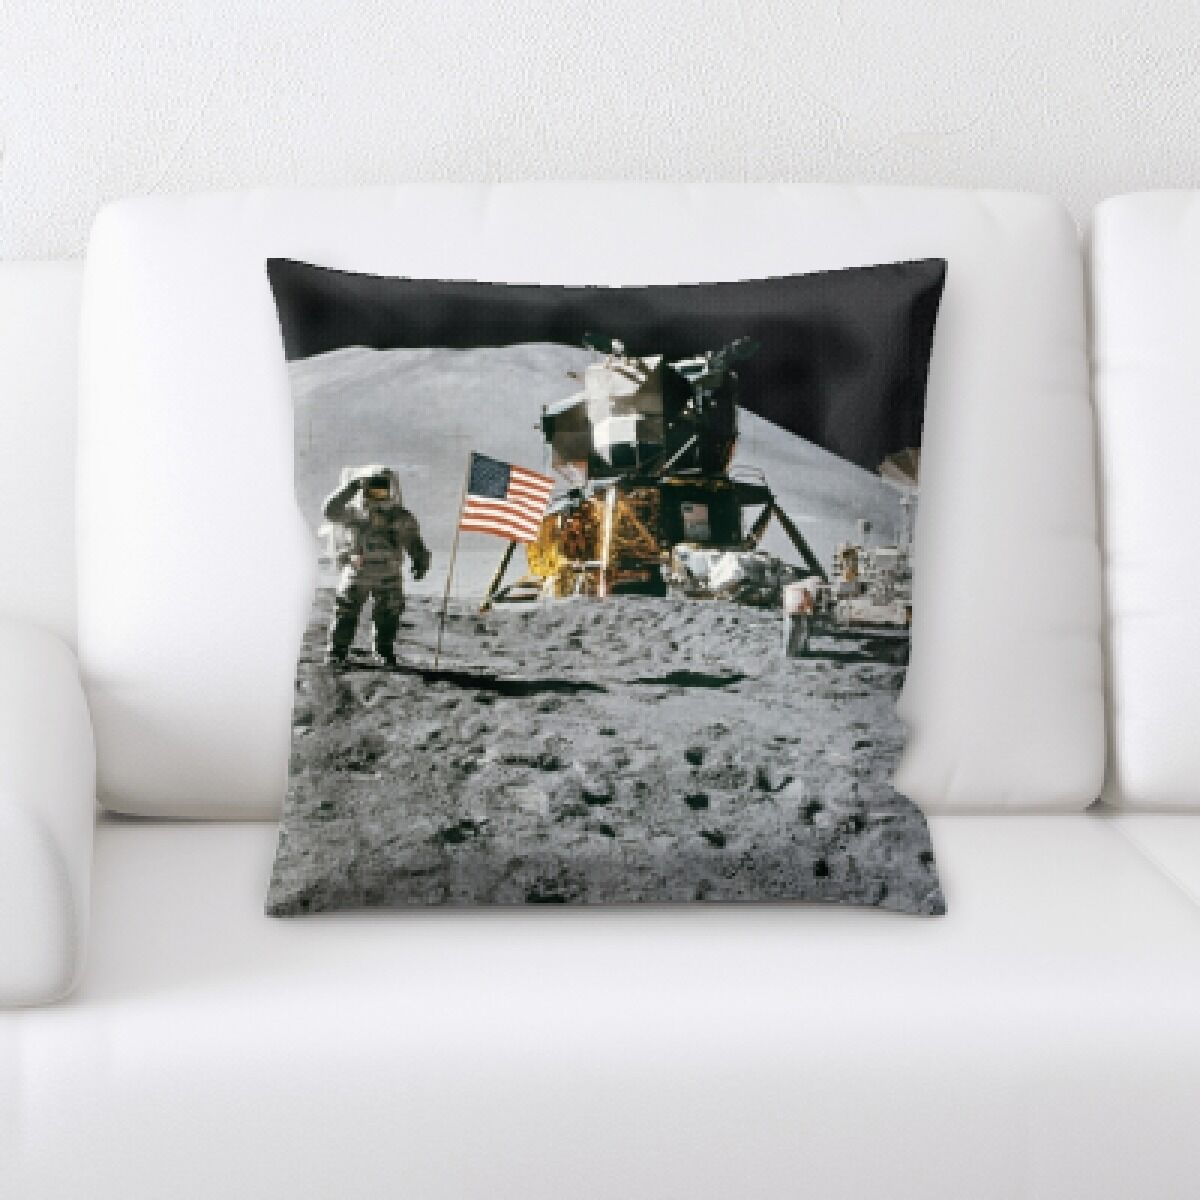 Berrien Man on The Moon With The Us Flag Throw Pillow